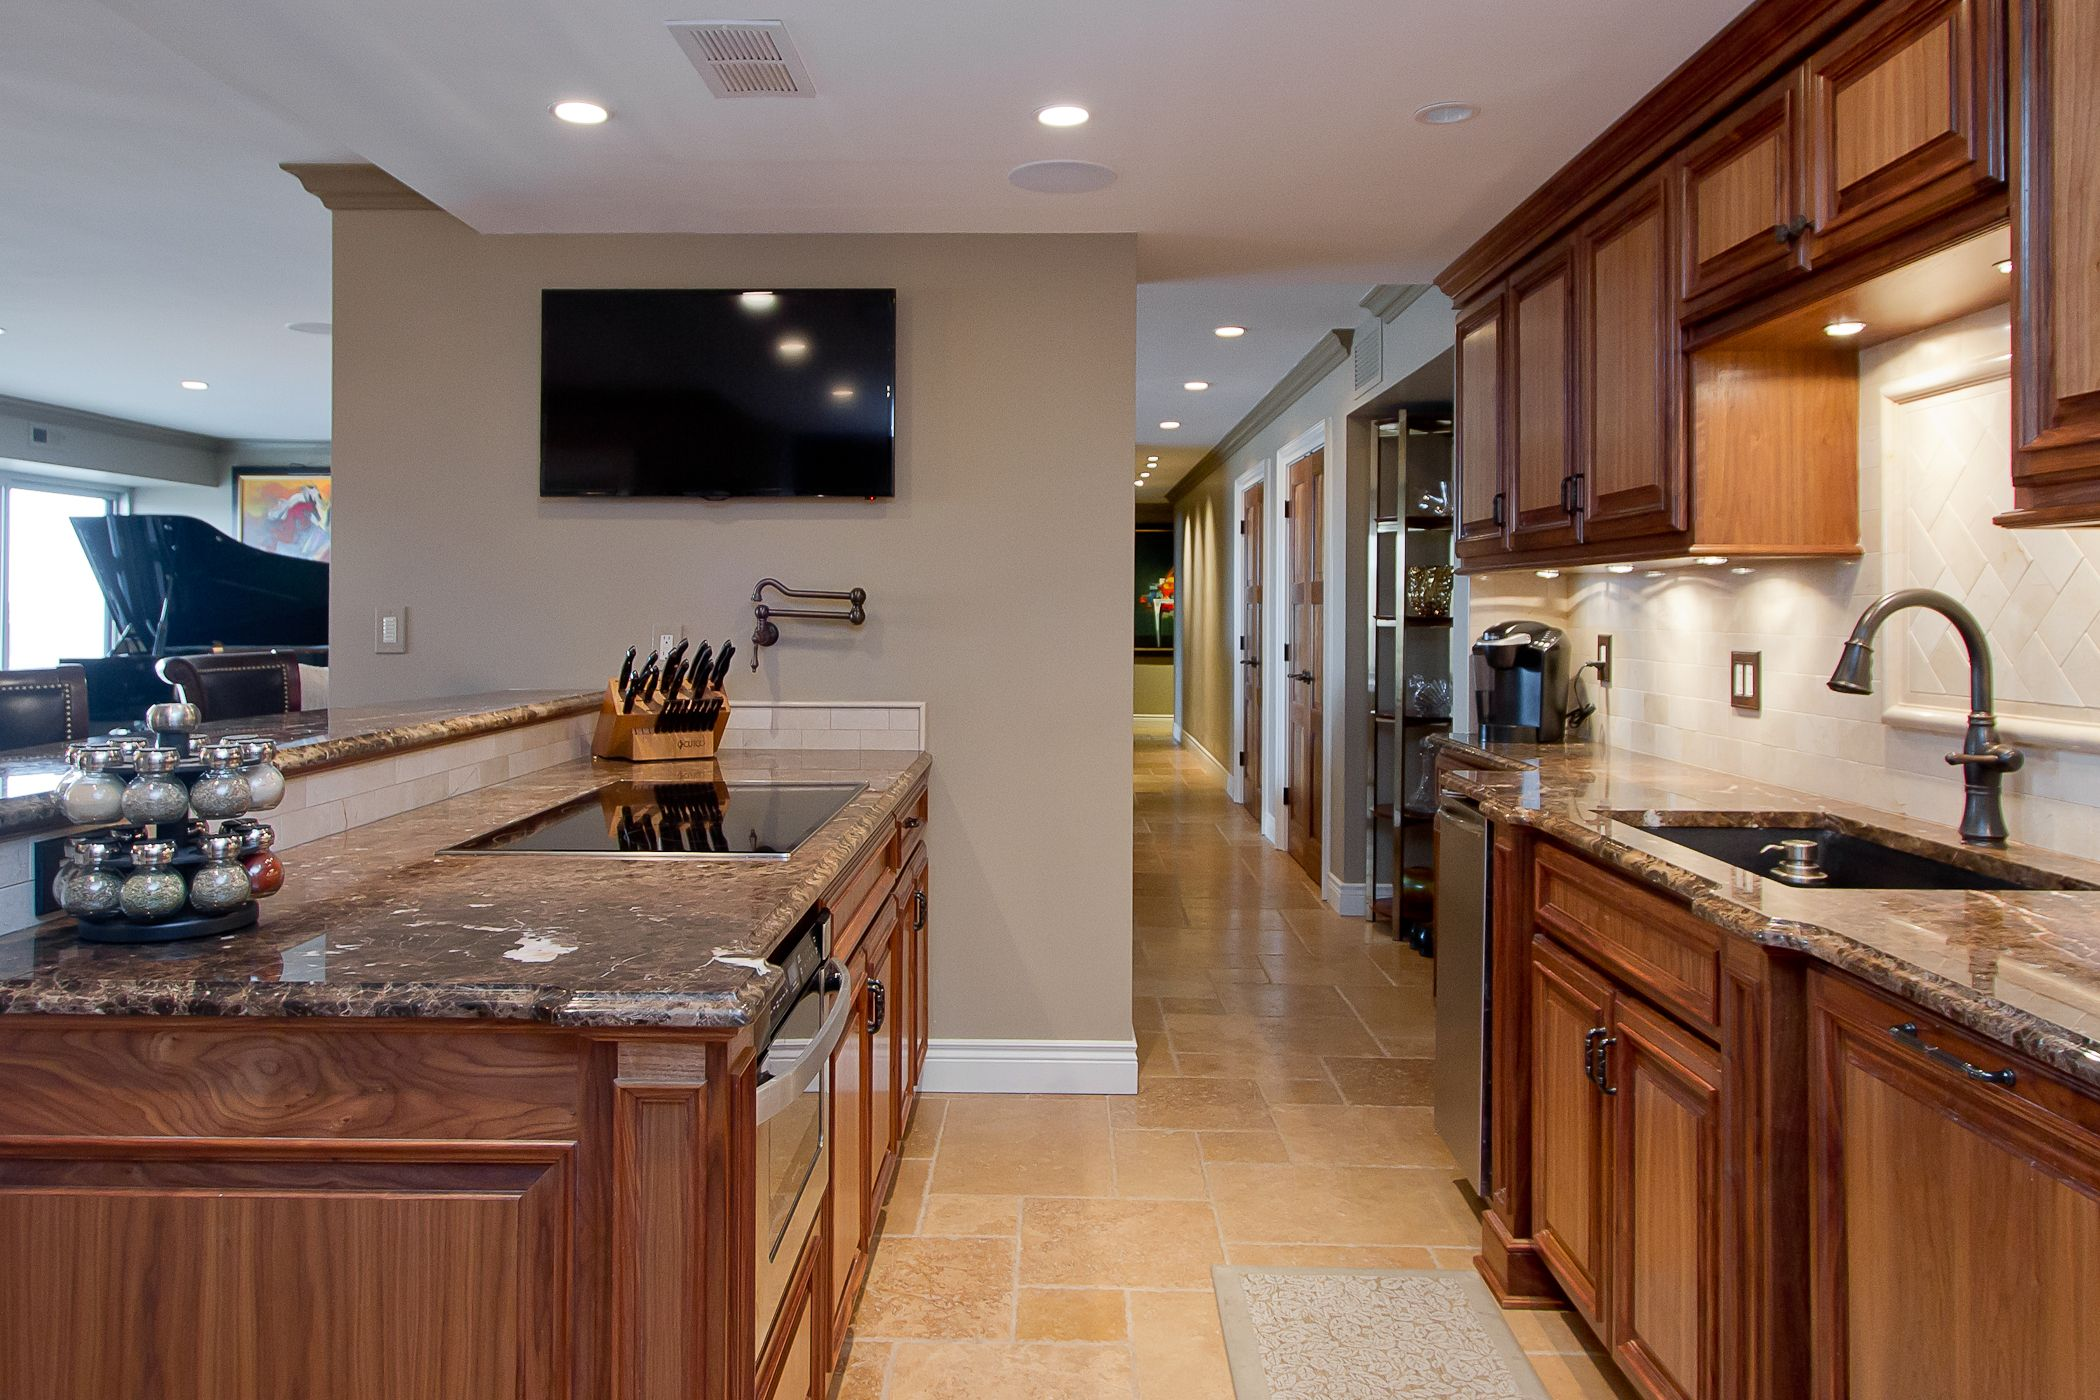 Dark Walnut Kitchen Cabinetry Condo On The Plaza Kansas City Mo Cabinetry Design Walnut Kitchen Custom Cabinetry